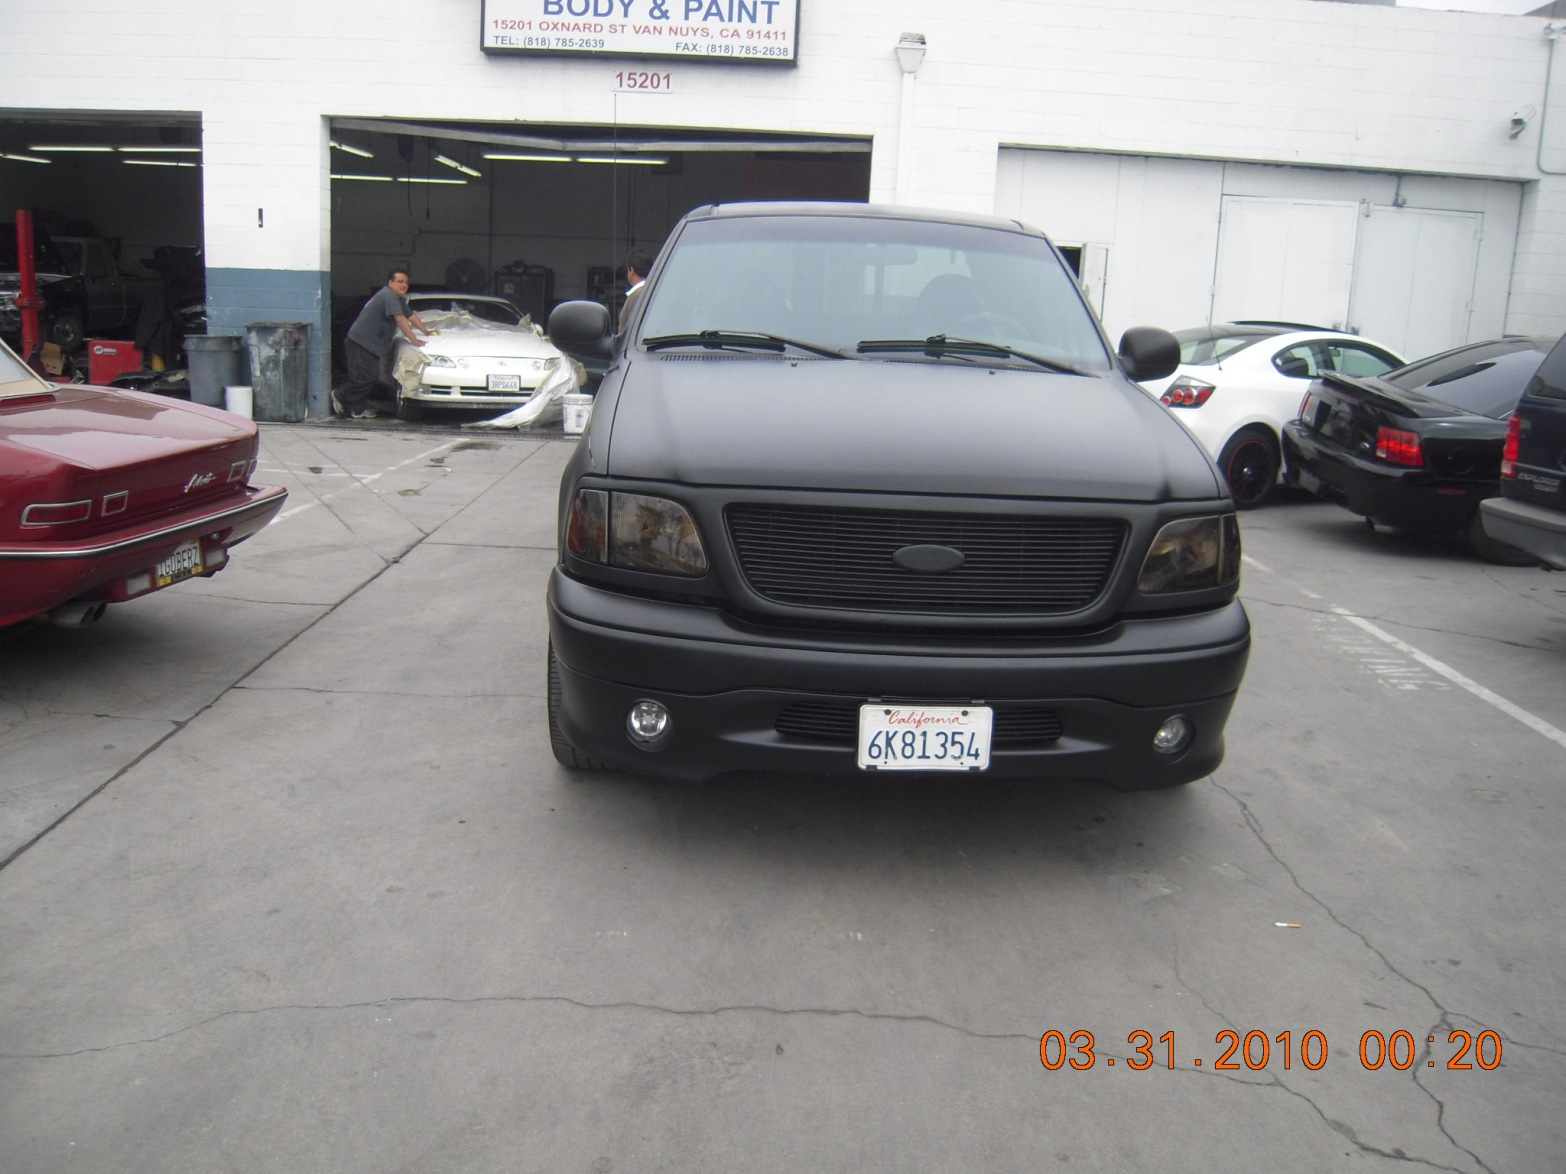 west-coast-body-and-paint-black-ford-f150-8